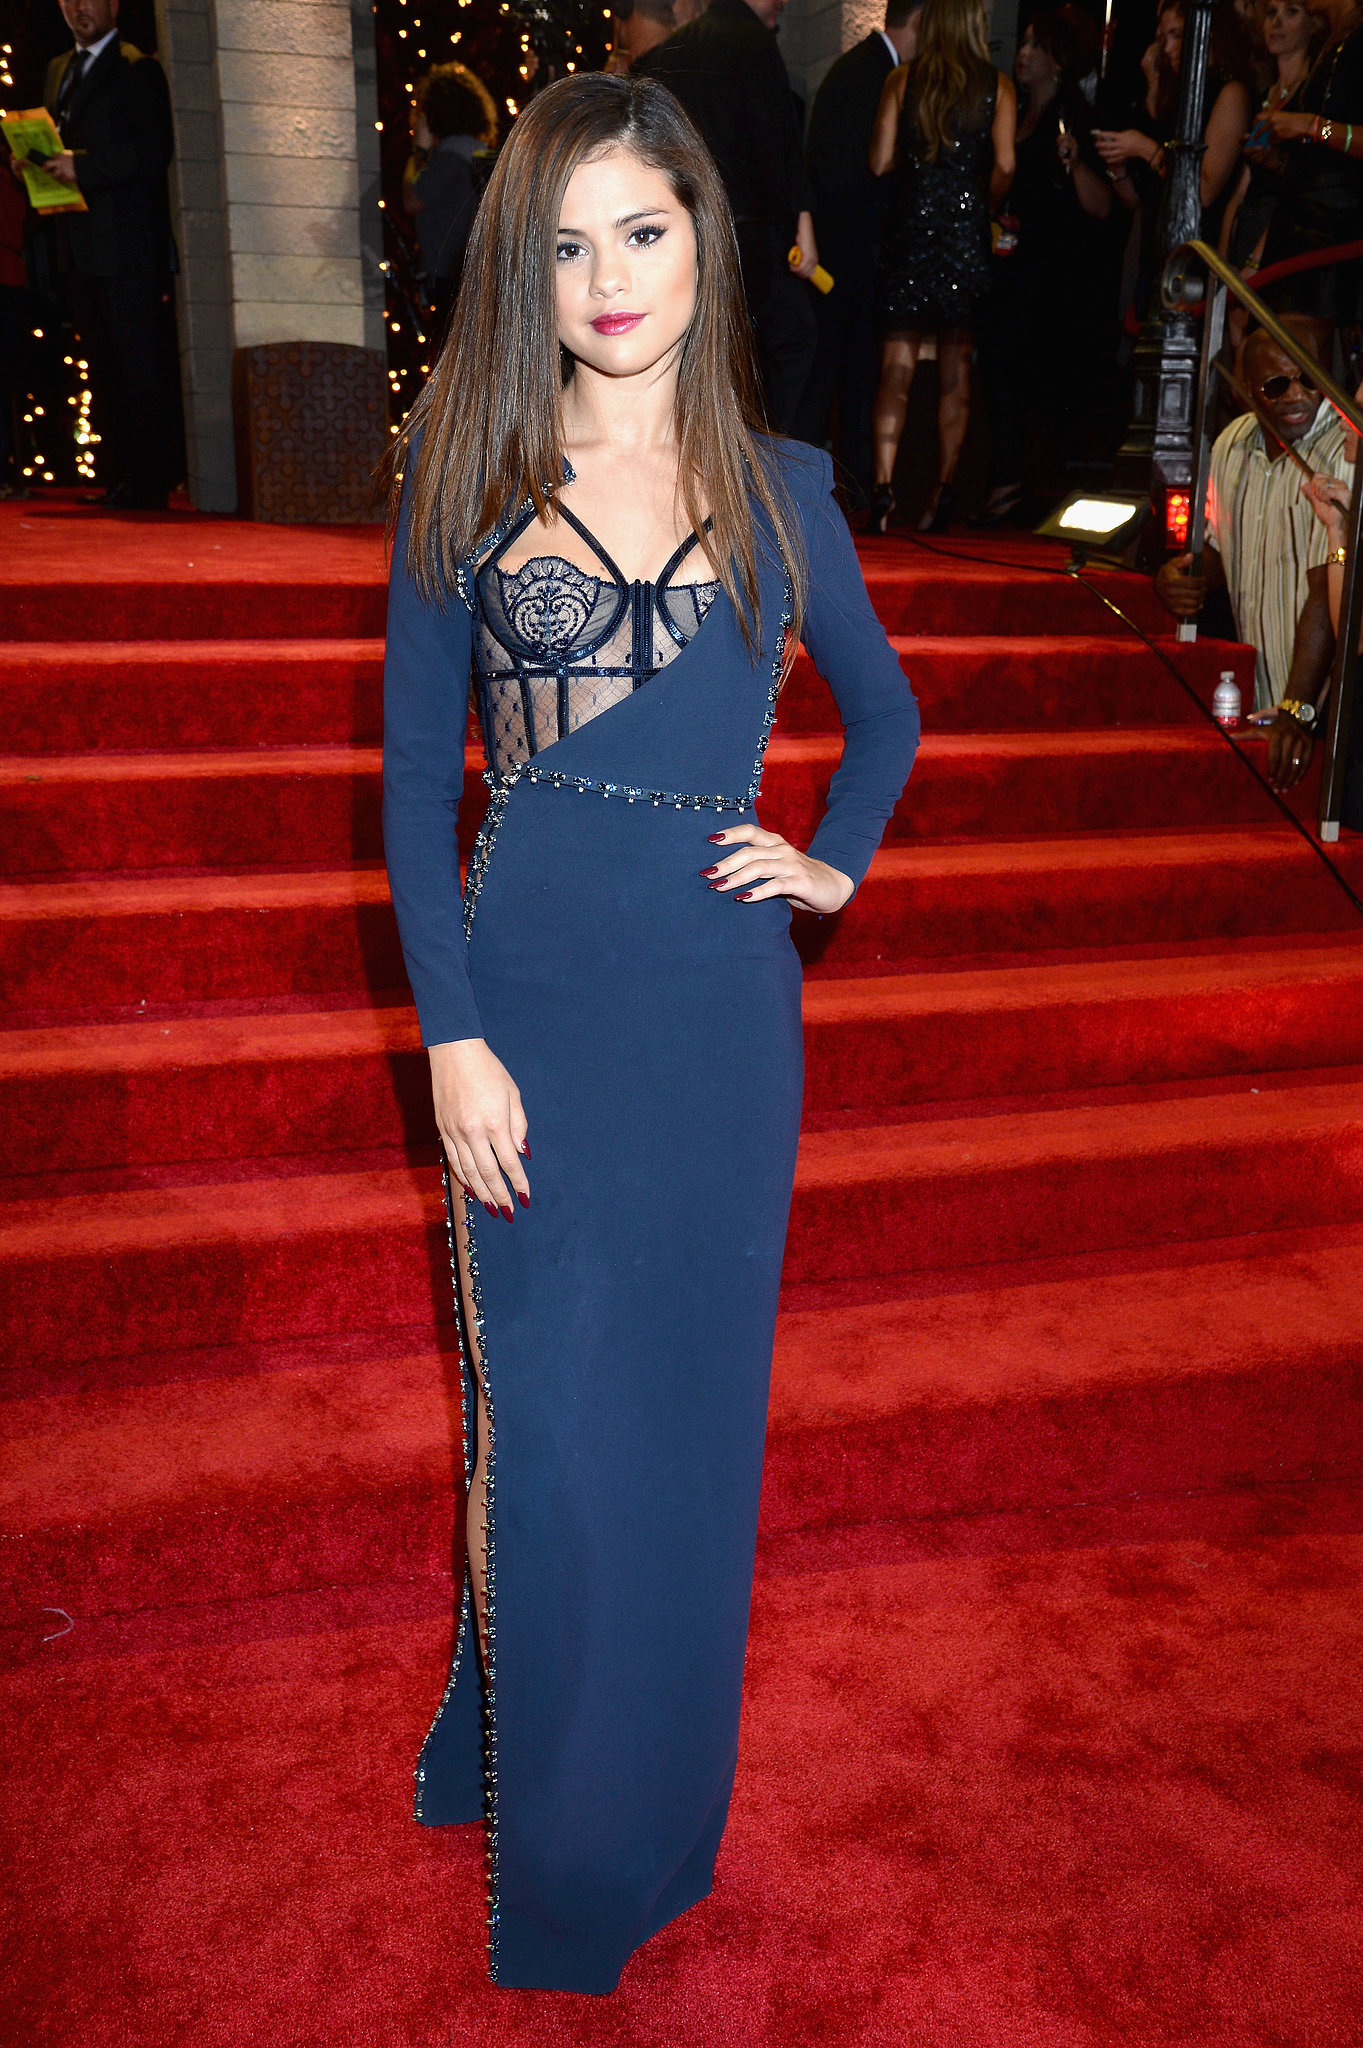 selena gomez at the mtv video music awards the sexiest